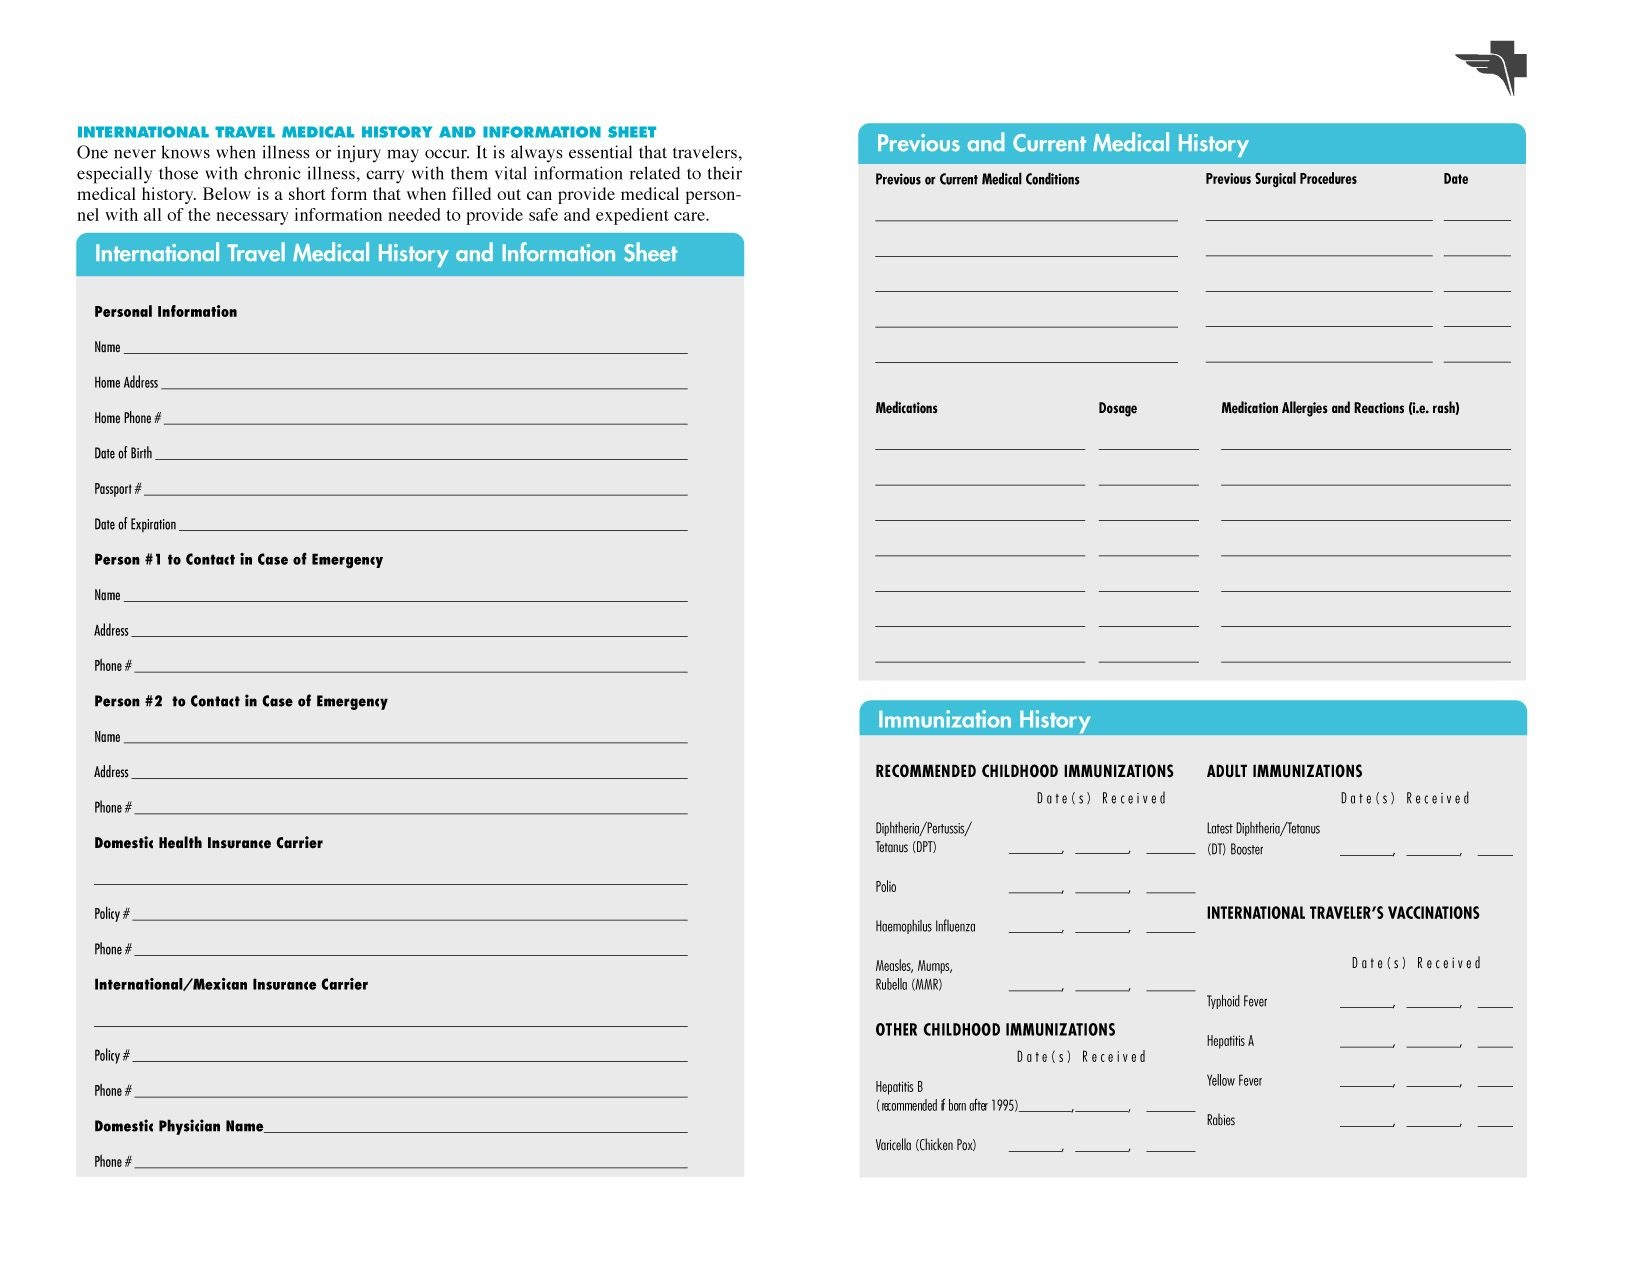 Free Printables | Free Printable Family Medical History Forms - Free Printable Medical History Forms